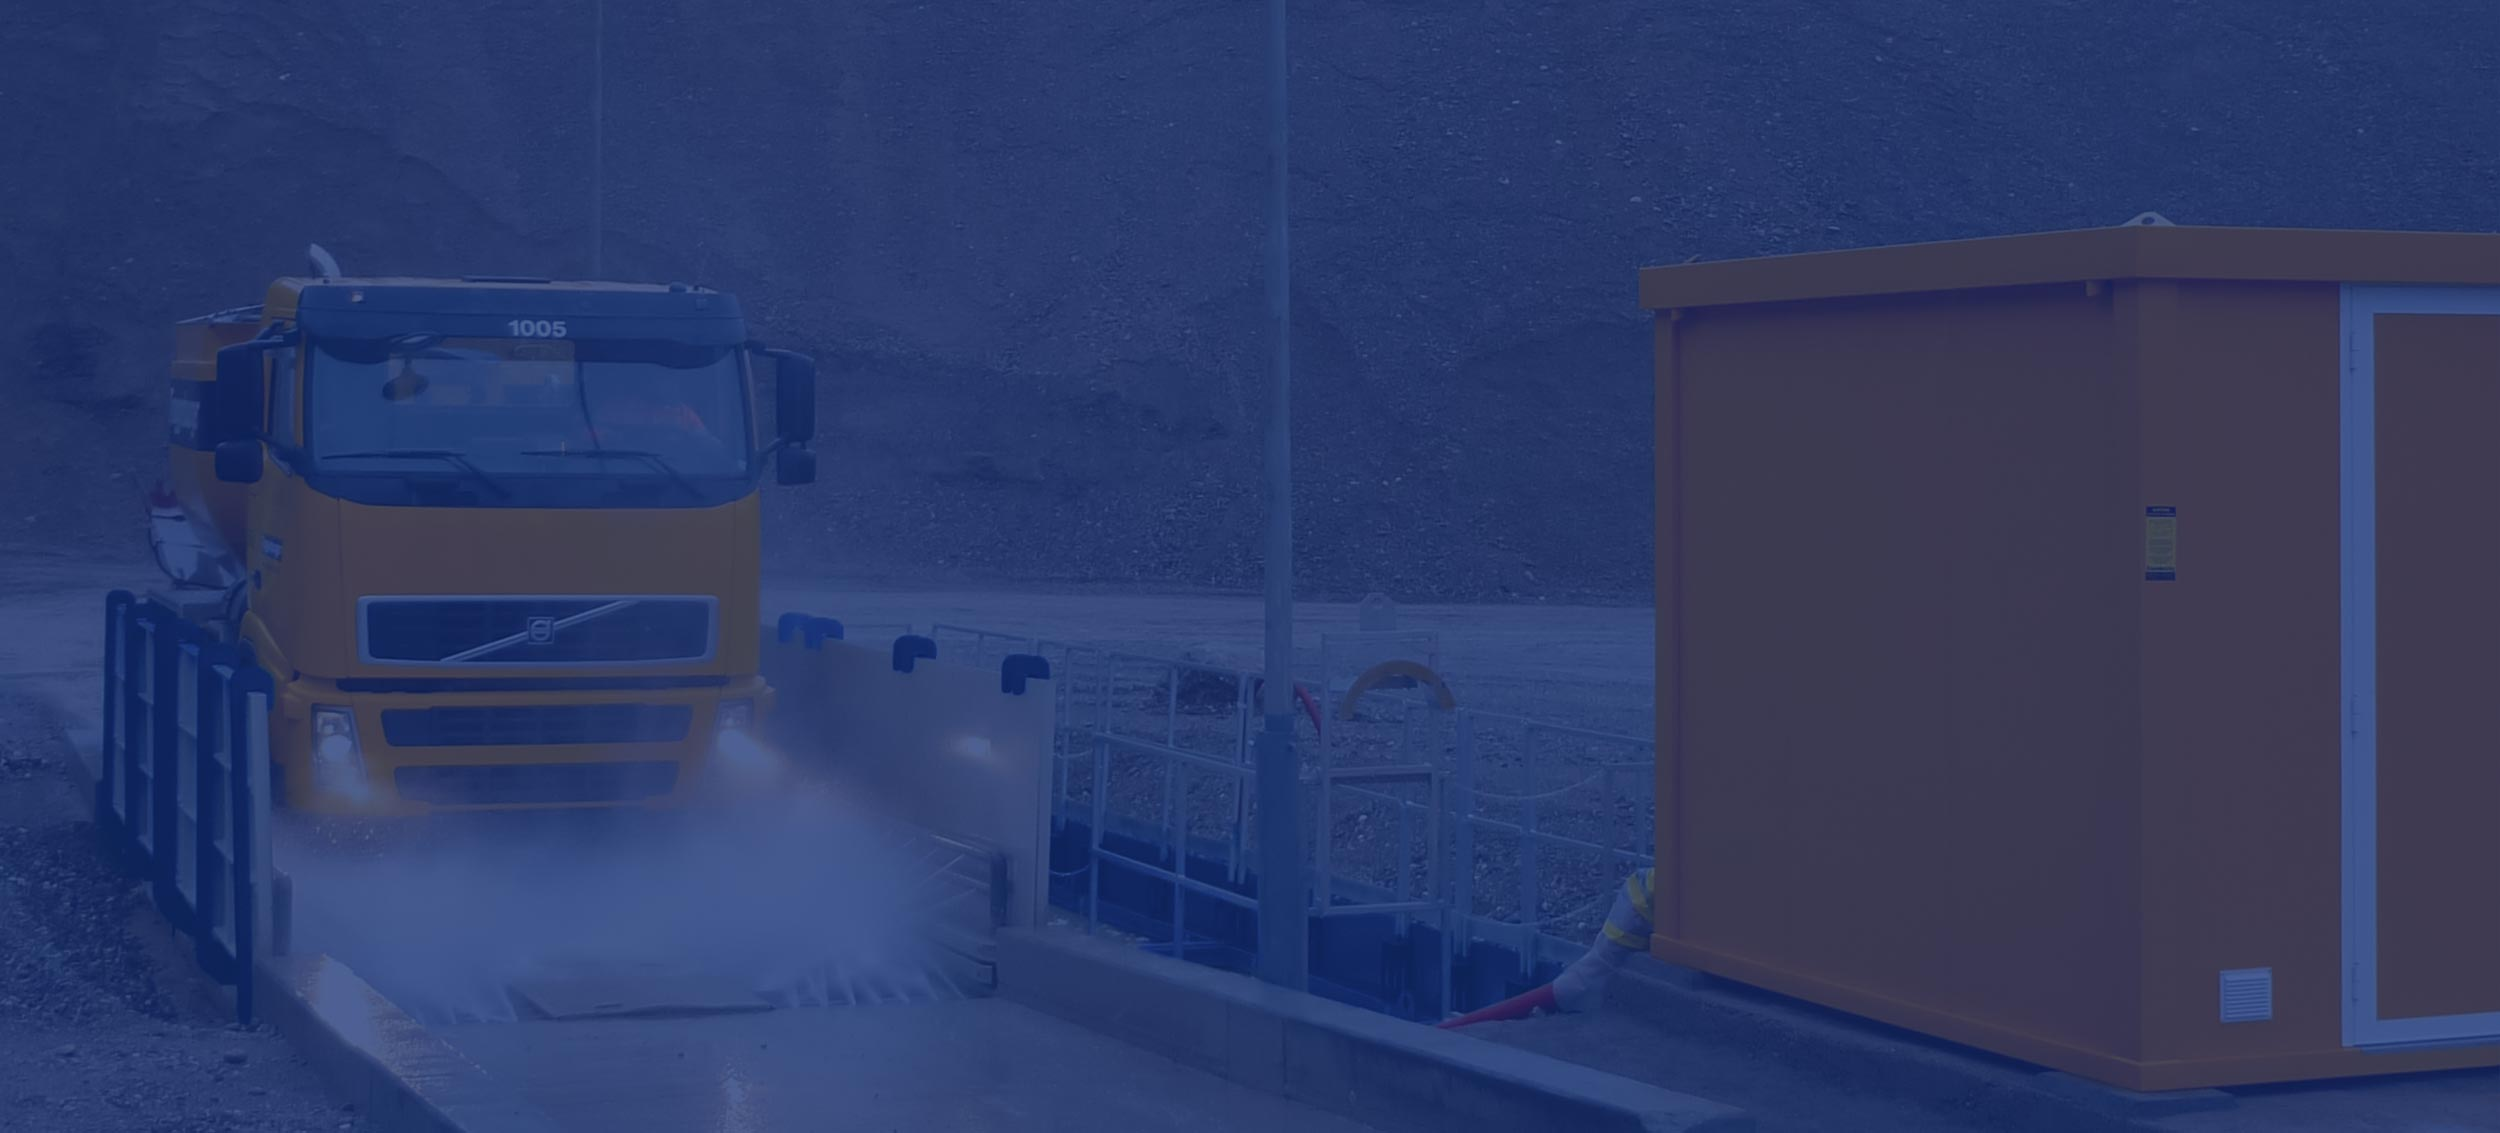 MobyDick Wheel Washing, Dust Control and Demucking Systems